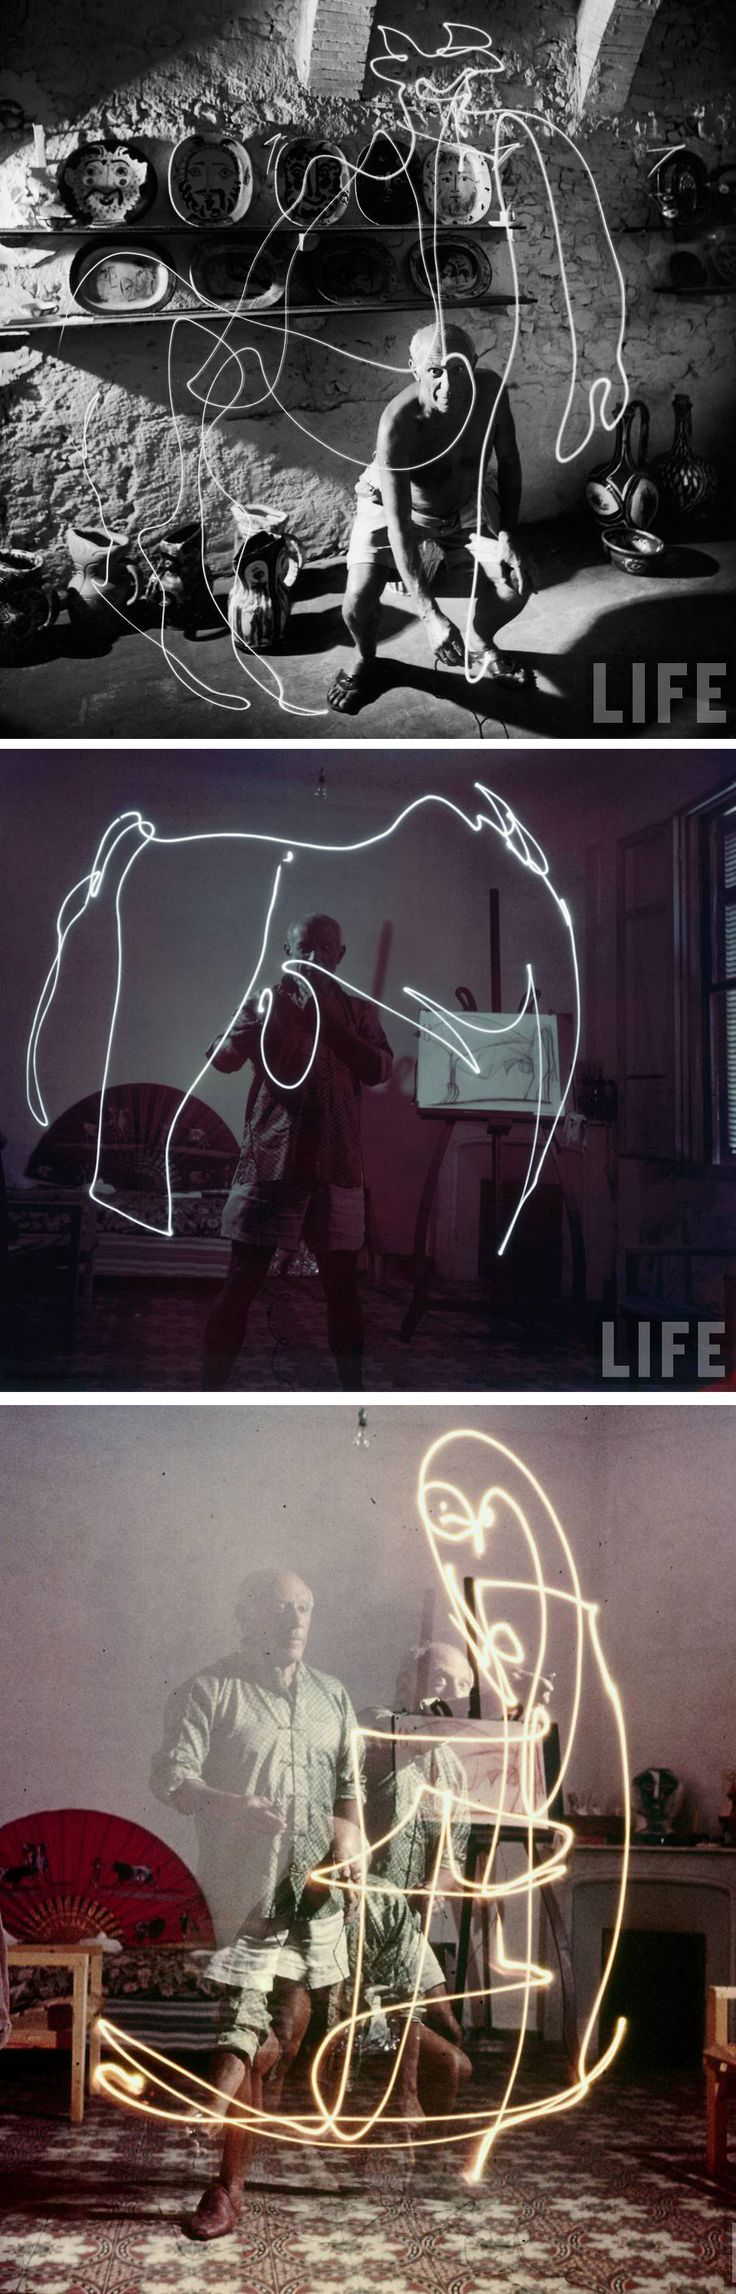 Picasso's light painting